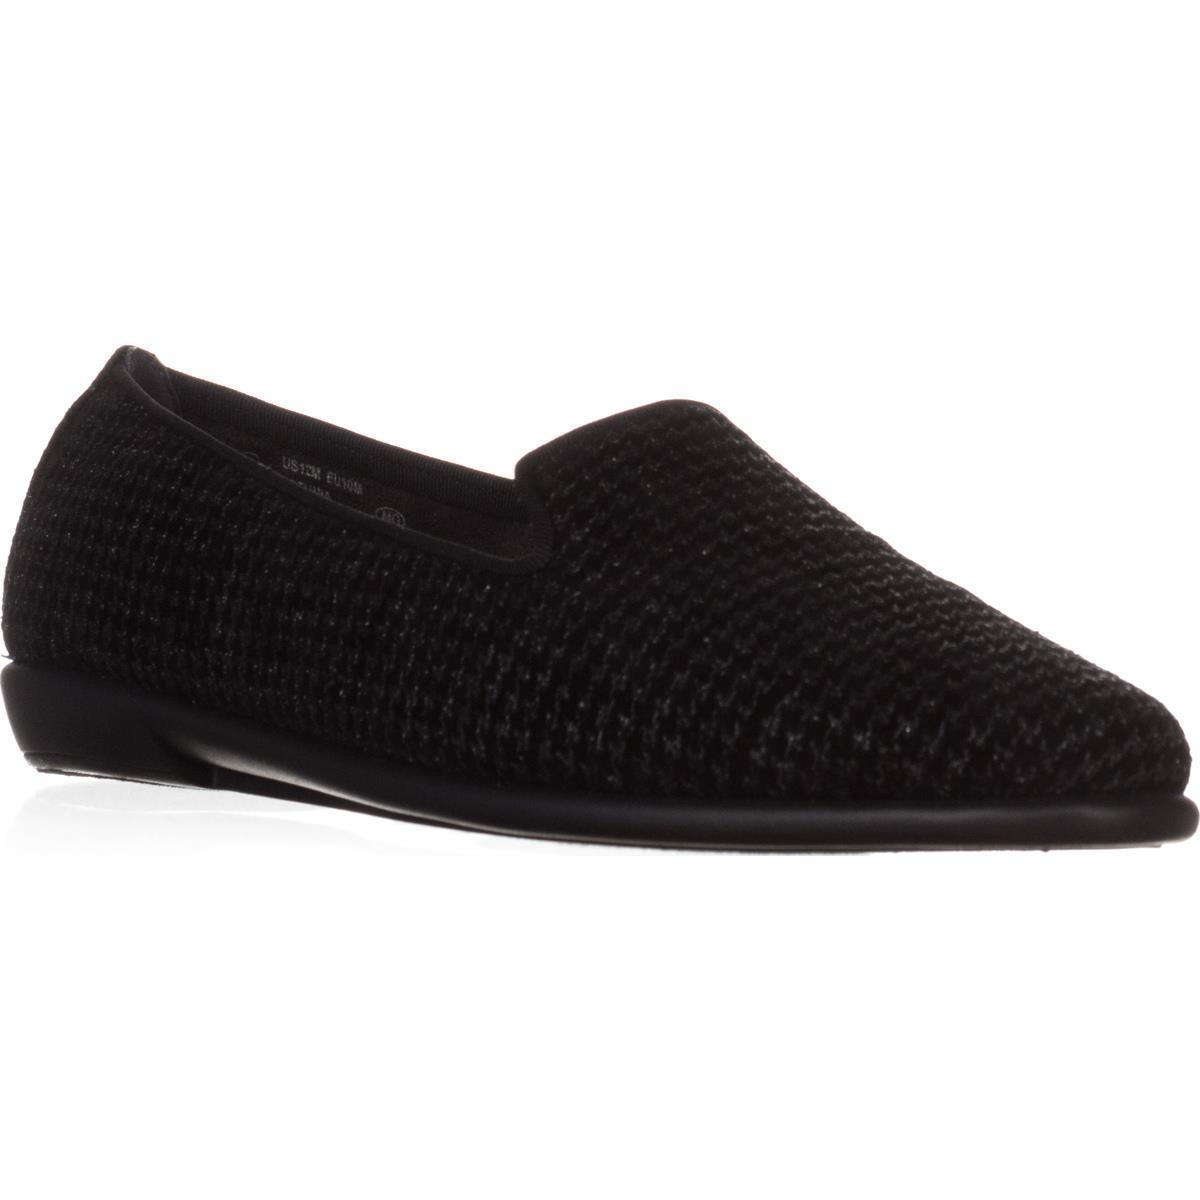 Womens Aerosoles Betunia Embroidered Slip-On Loafers, Black Houndstooth by Aerosoles